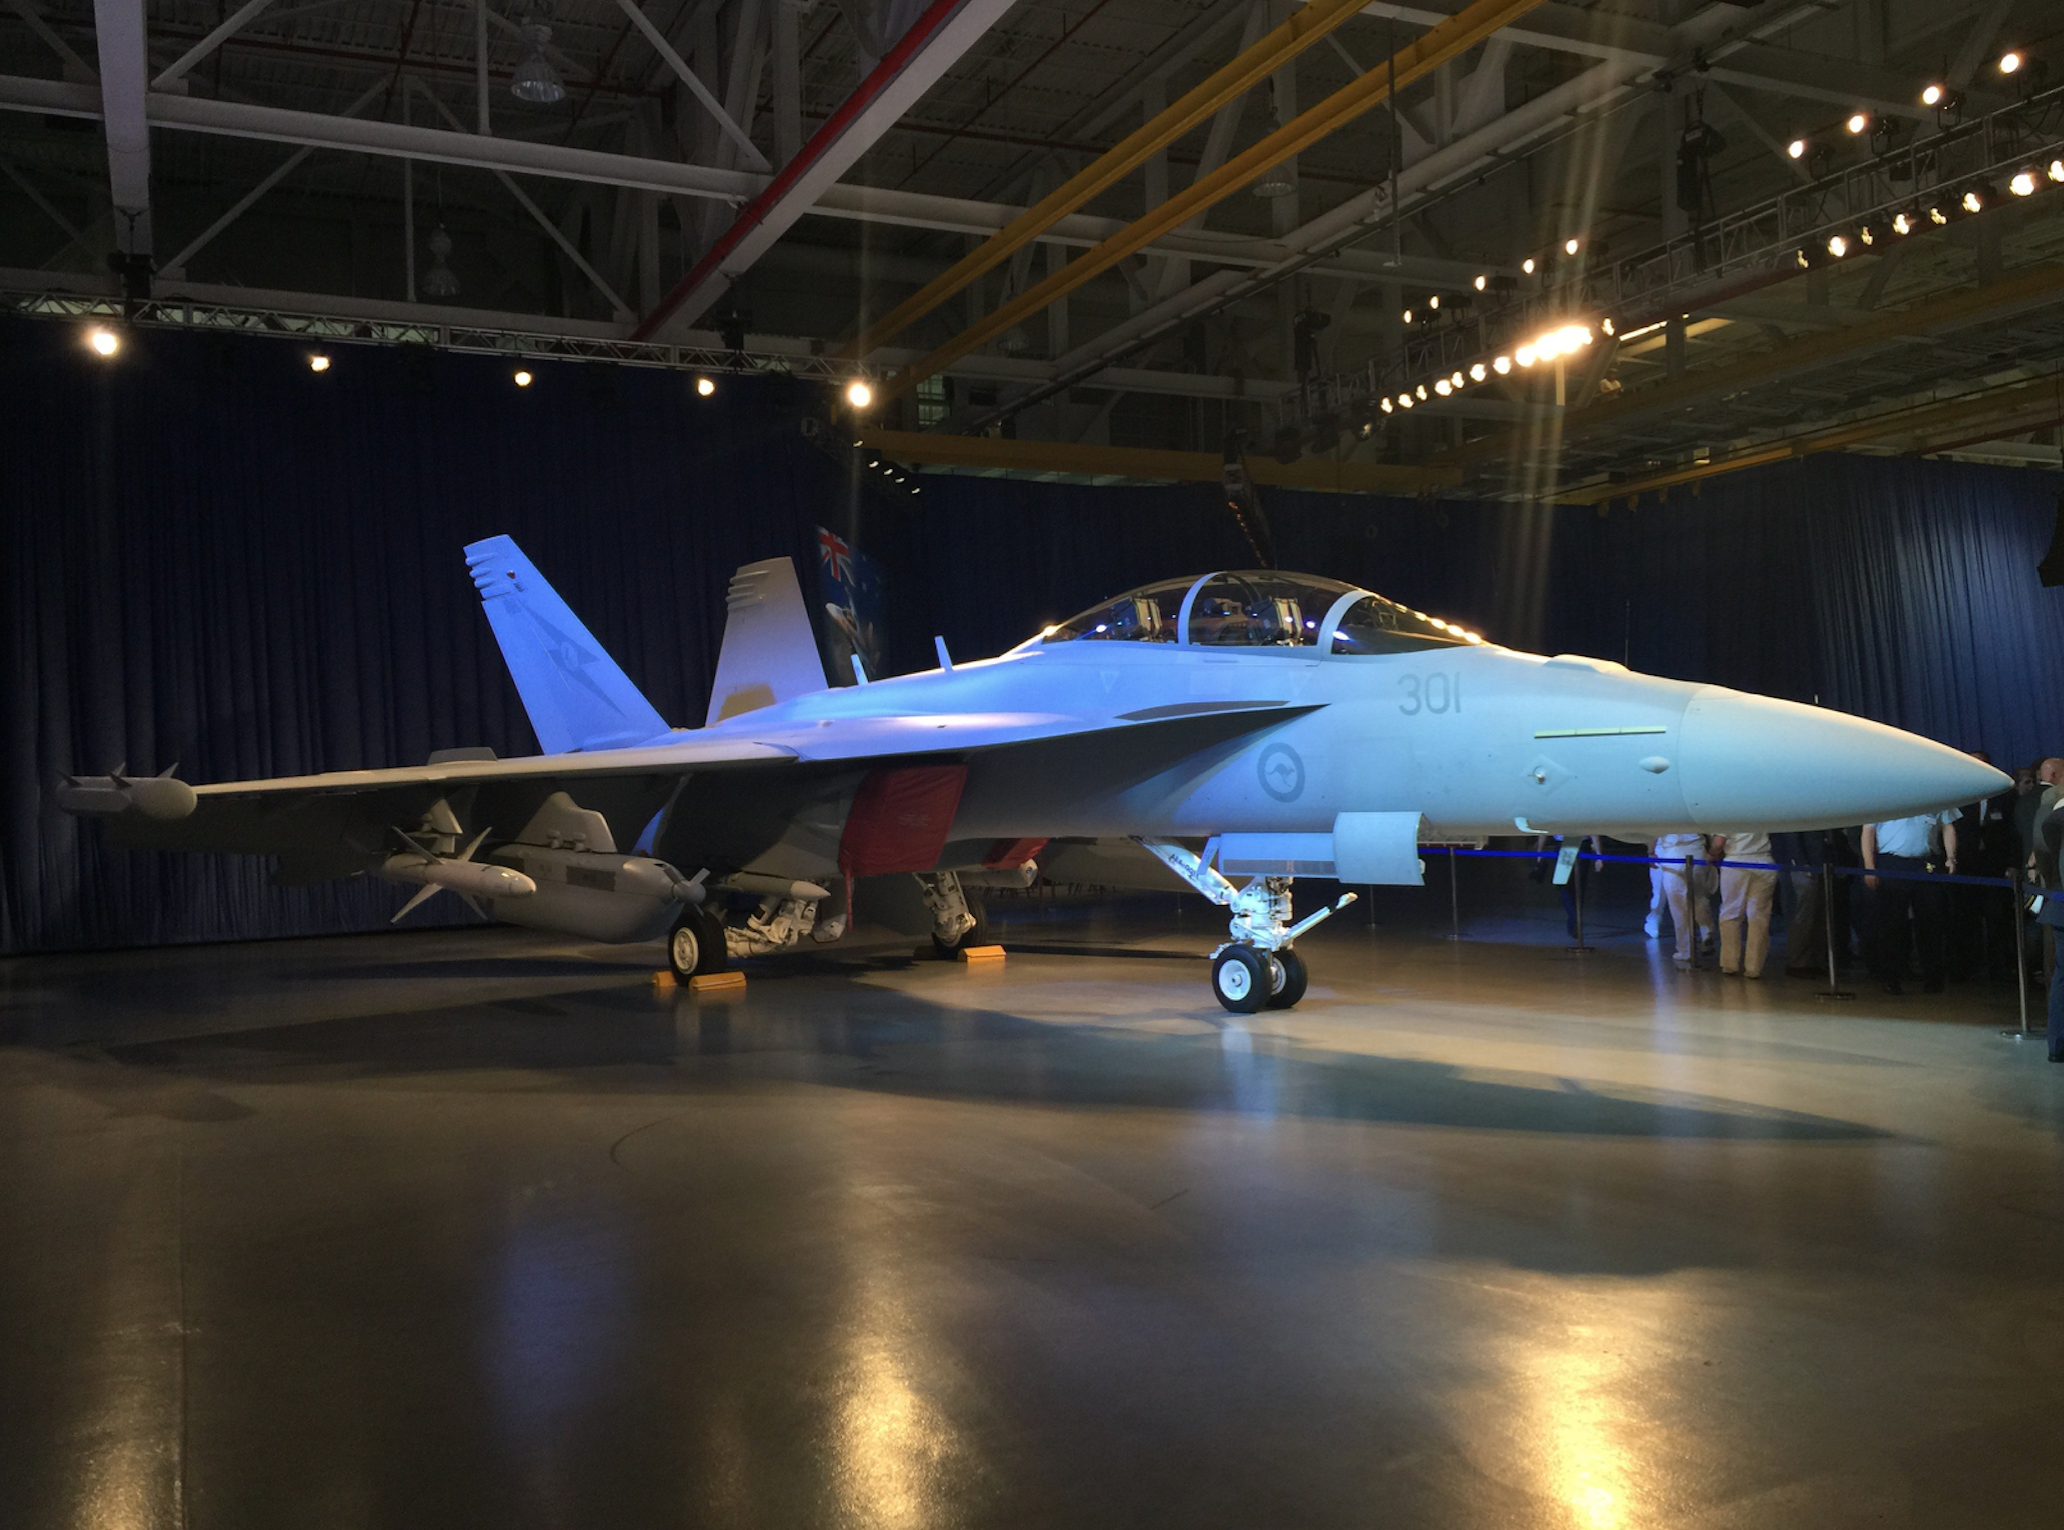 RAAF's first Growler during a July 29, 2015 ceremony in Boeing's plant in St. Louis, Mo. USNI News Photo